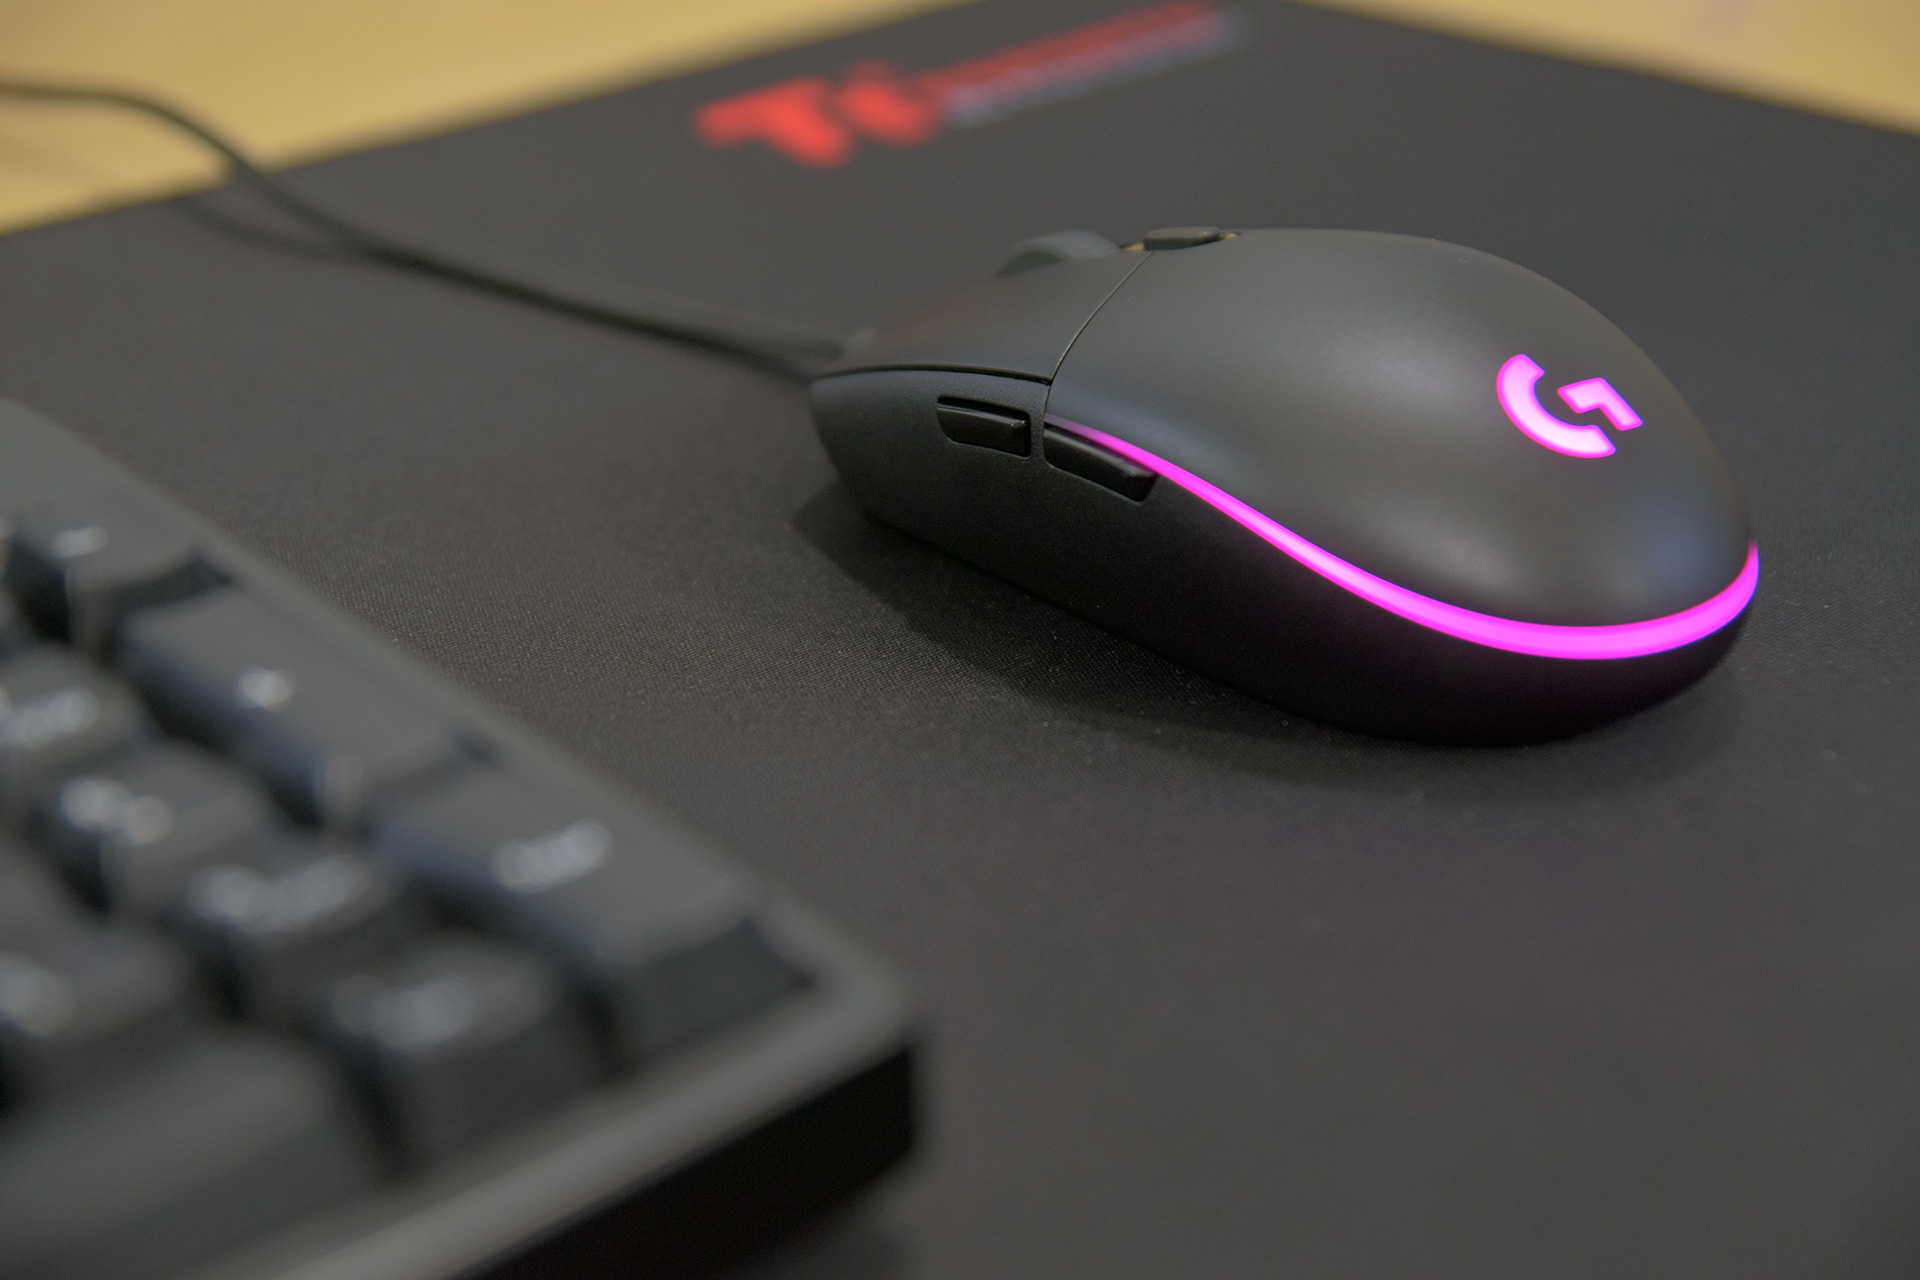 Logitech G Pro Gaming Mouse Review | All aboard the HYPE